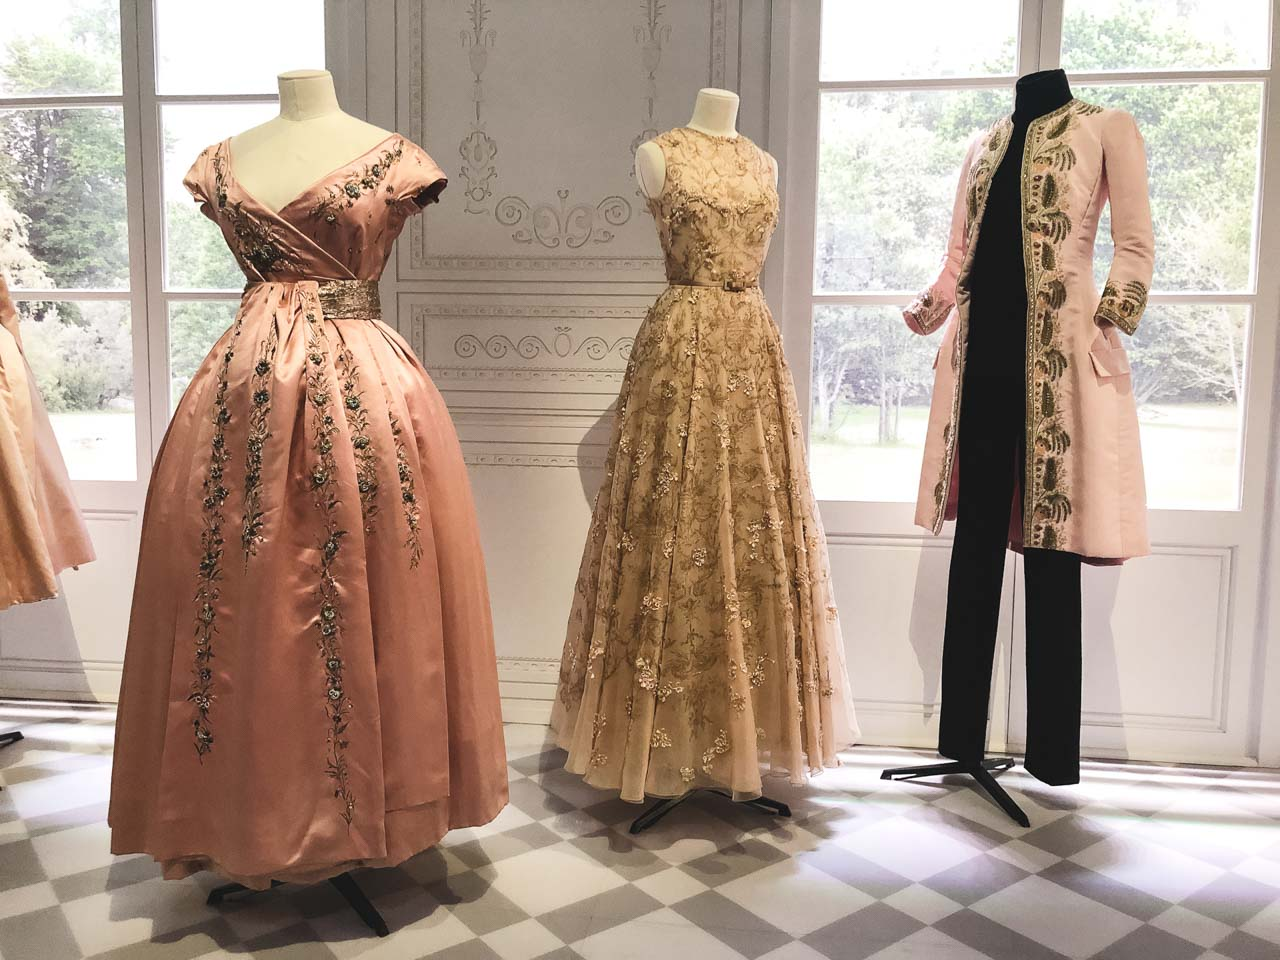 Dior creations in the Historicism section of the Christian Dior: Designer of Dreams exhibition at the Victoria and Albert Museum in London